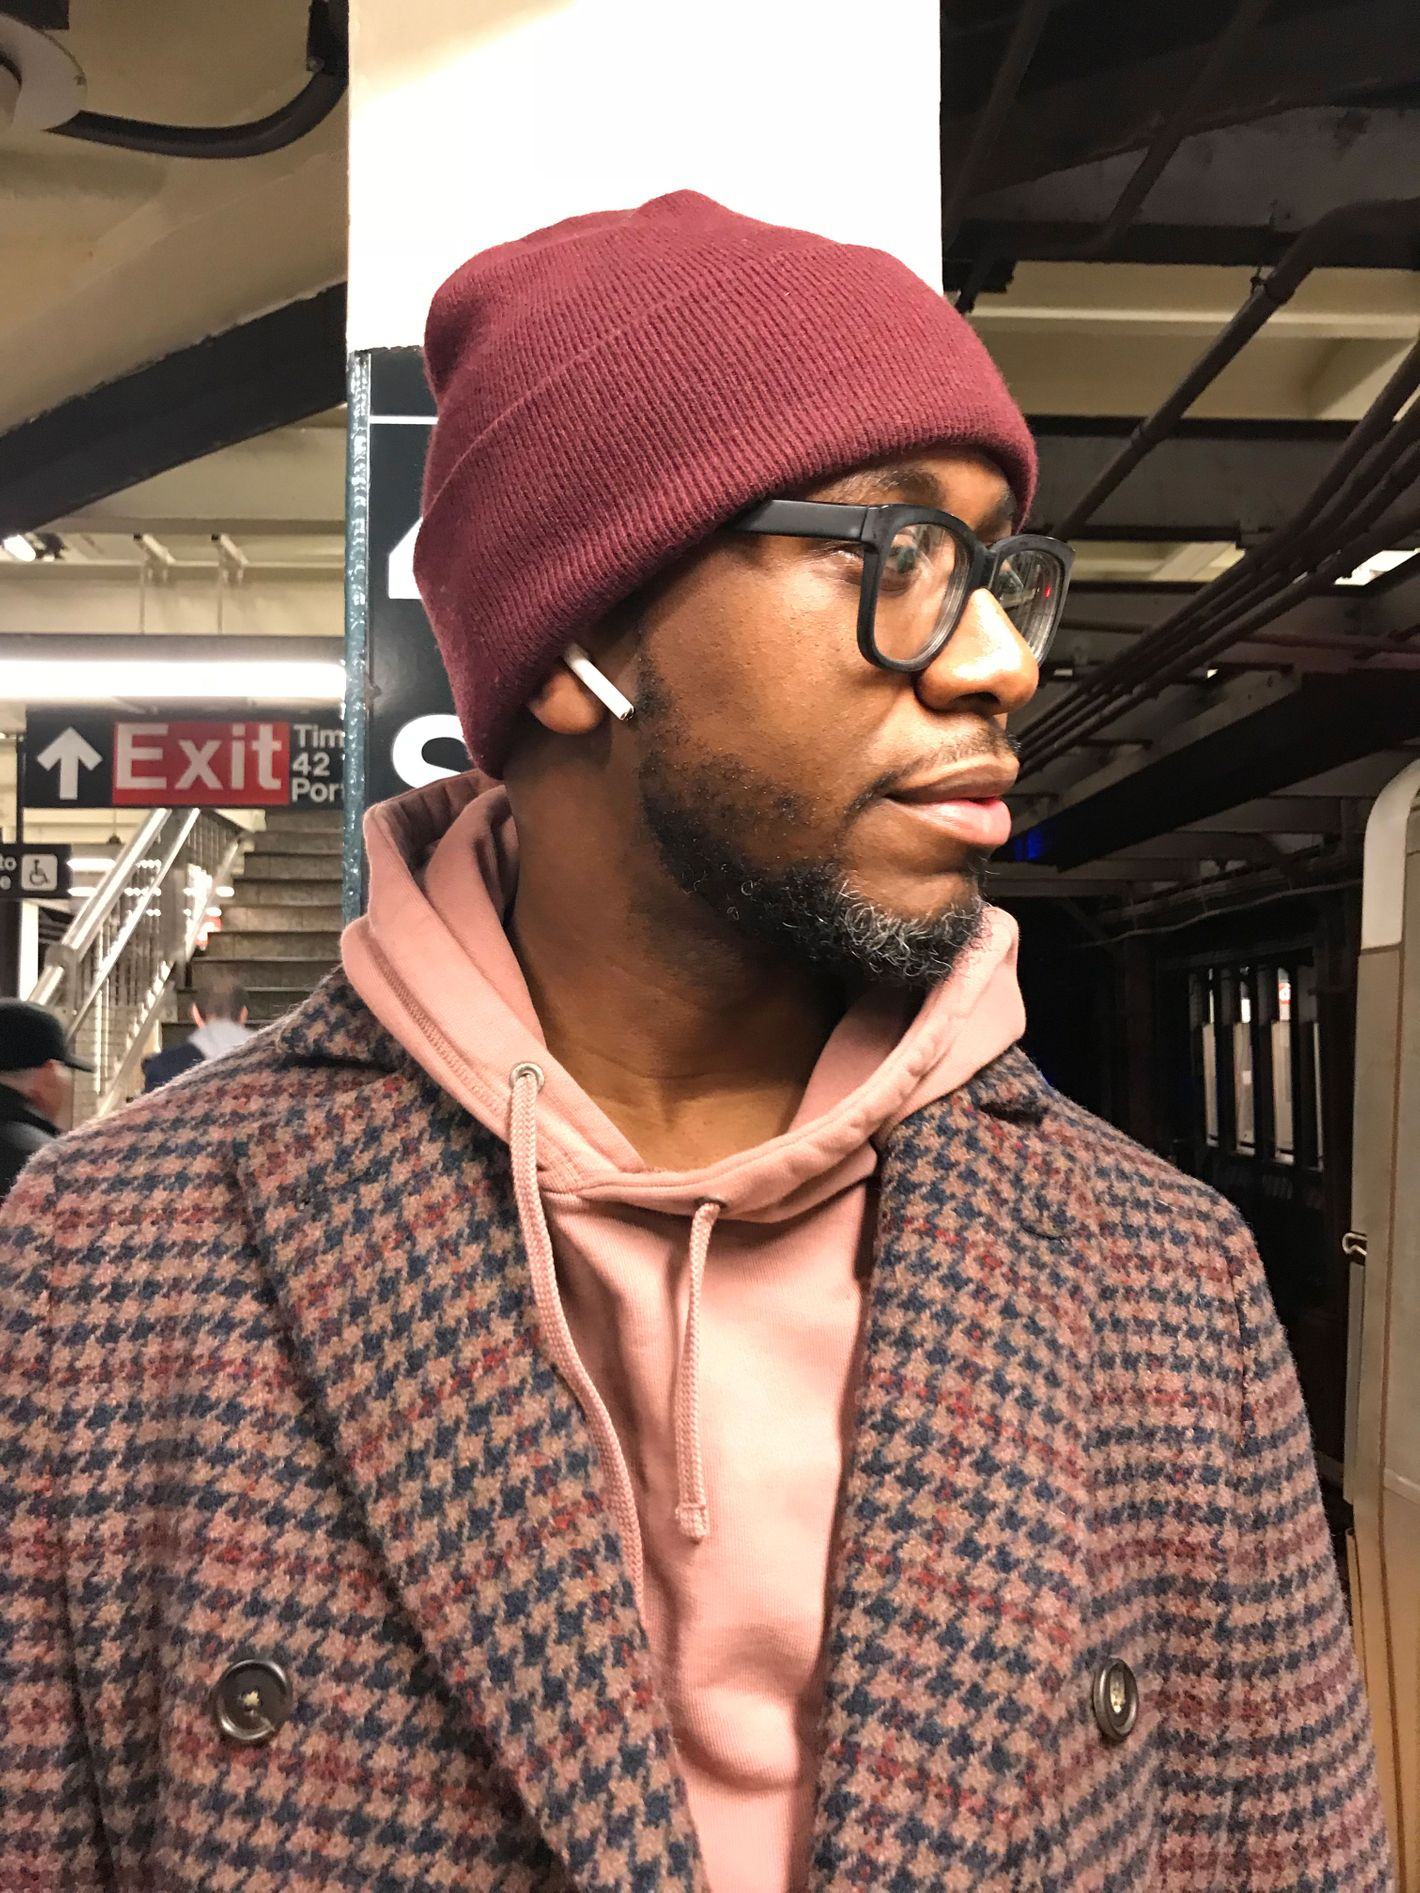 How To Wear Airpods Without Looking Like An Idiot Wiring Harness Interview Questions